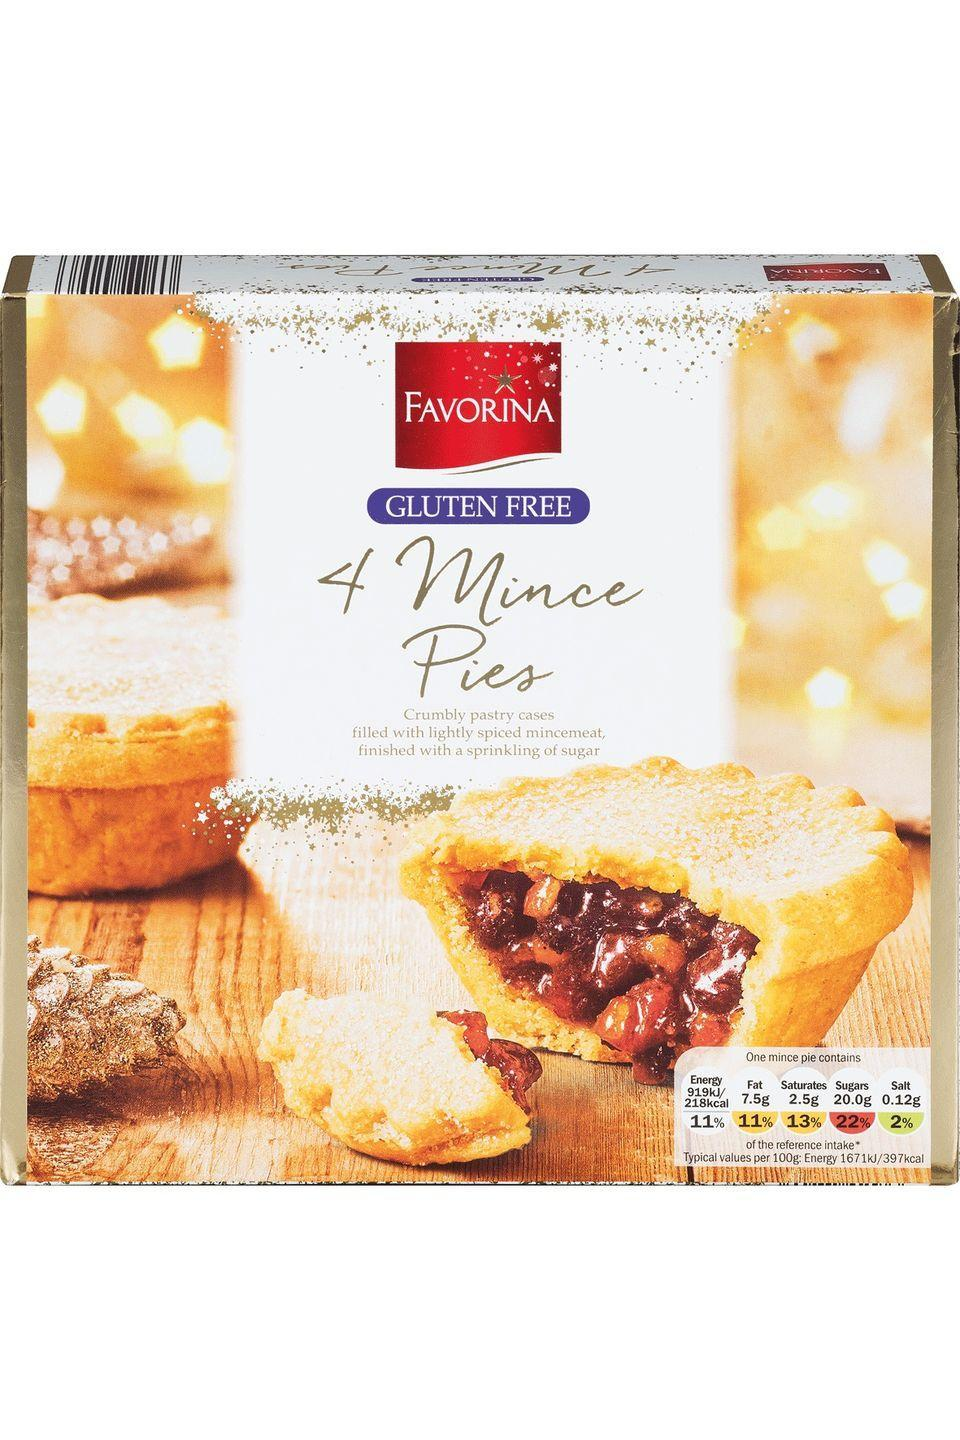 "<p><strong>Overall score: 67/100 </strong></p><p>A subtle, earthy aroma comes from the fruity mincemeat, with testers praising the good filling to pastry ratio of these neatly designed gluten-free mince pies. The soft and crisp casing has a somewhat cloying texture and, although the filling has a full, fruity taste, it lacked any strength. </p><p><a class=""link rapid-noclick-resp"" href=""https://www.lidl.co.uk/"" rel=""nofollow noopener"" target=""_blank"" data-ylk=""slk:AVAILABLE IN STORE ONLY"">AVAILABLE IN STORE ONLY</a> <strong>Lidl, £1.49 for 4 (serves 4)</strong></p>"